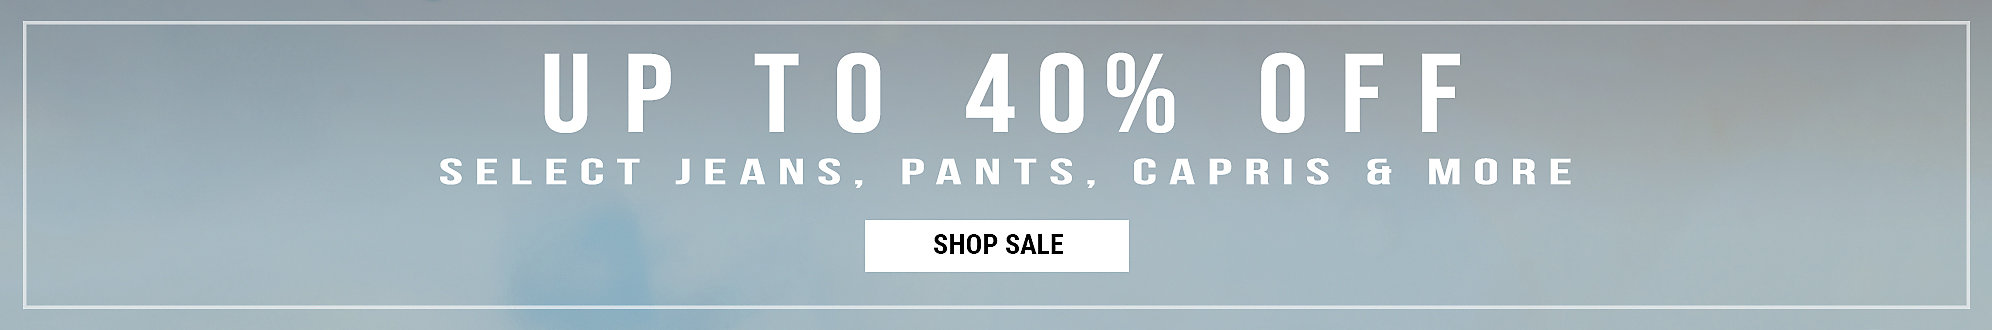 Up To 40% Off Select Jeans, Pants, Capris, And More